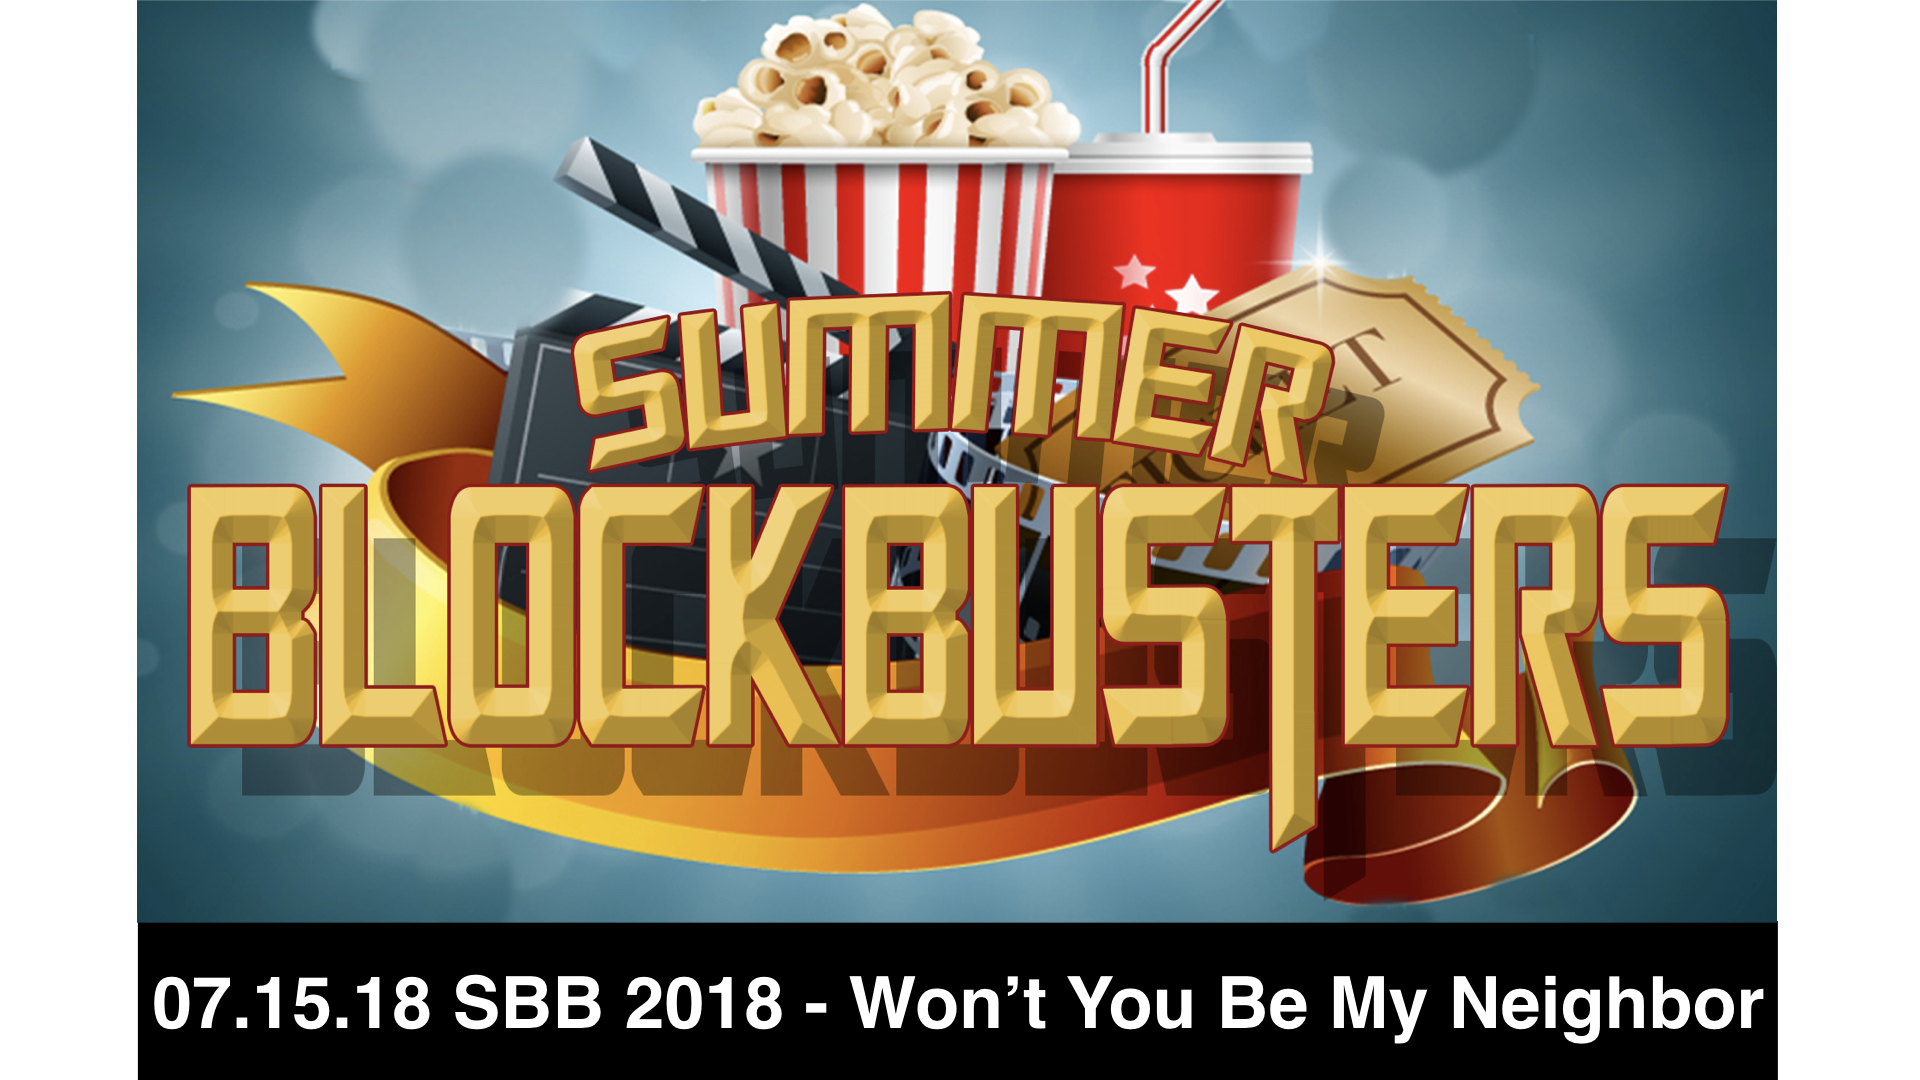 07.15.18 SBB 2018 - Won't You Be My Neighbor